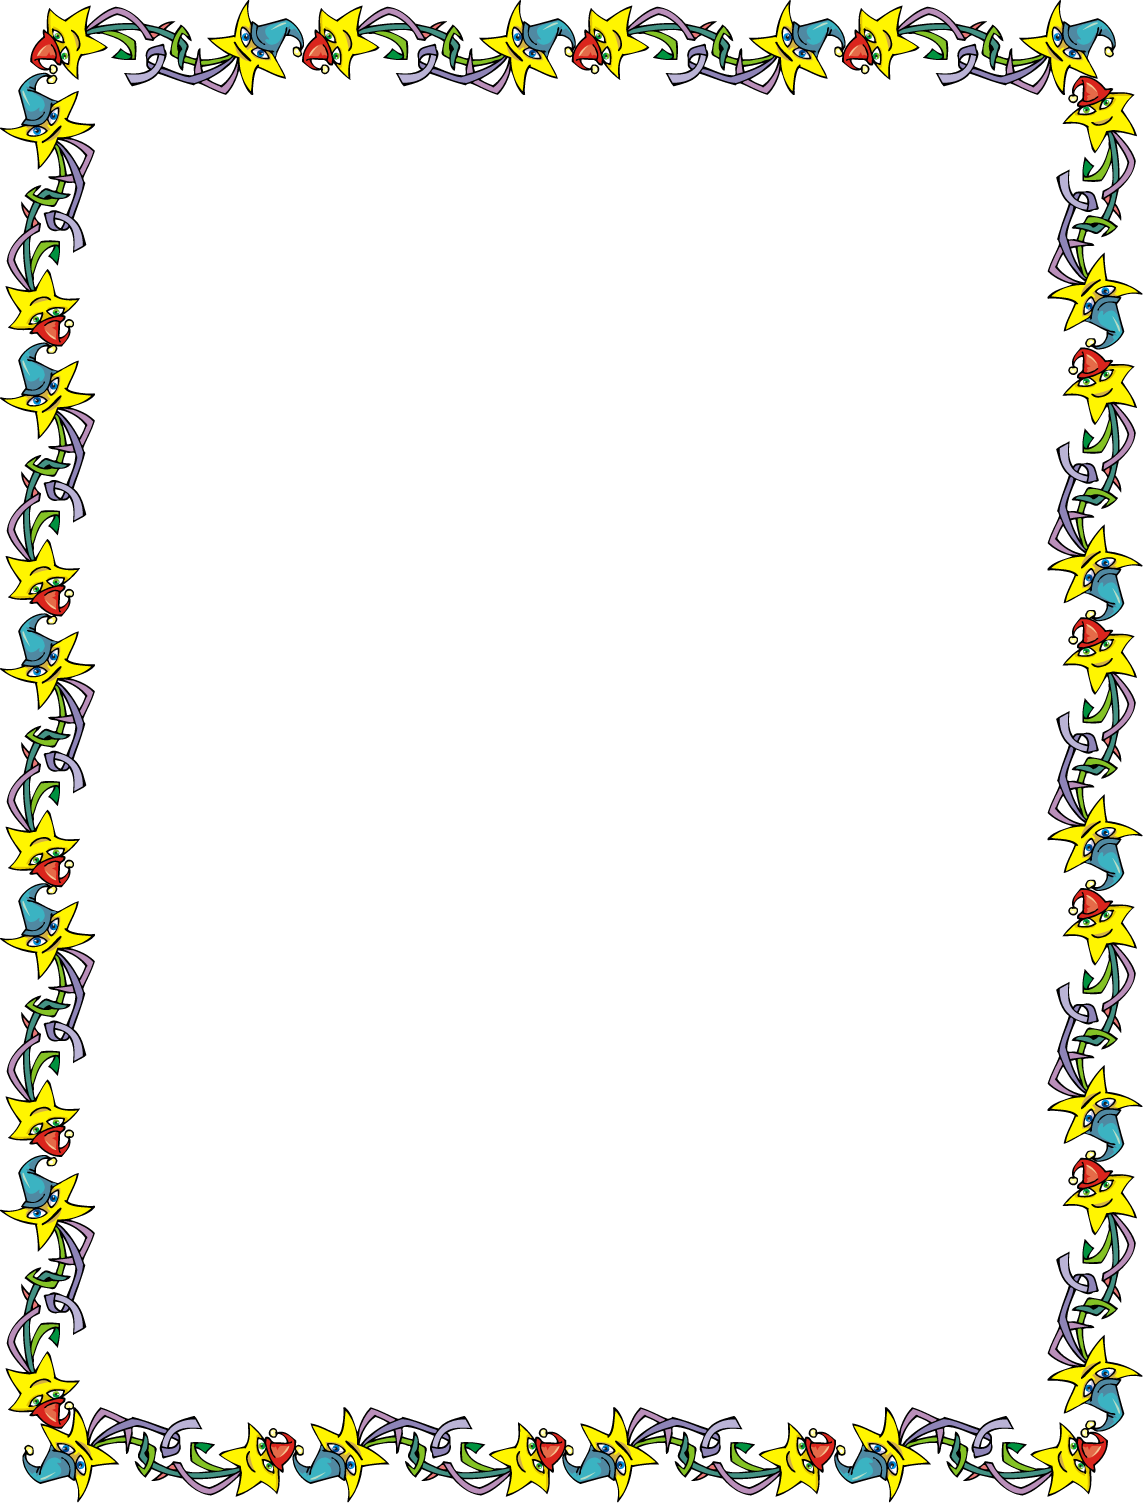 Poker clipart border, Poker border Transparent FREE for.